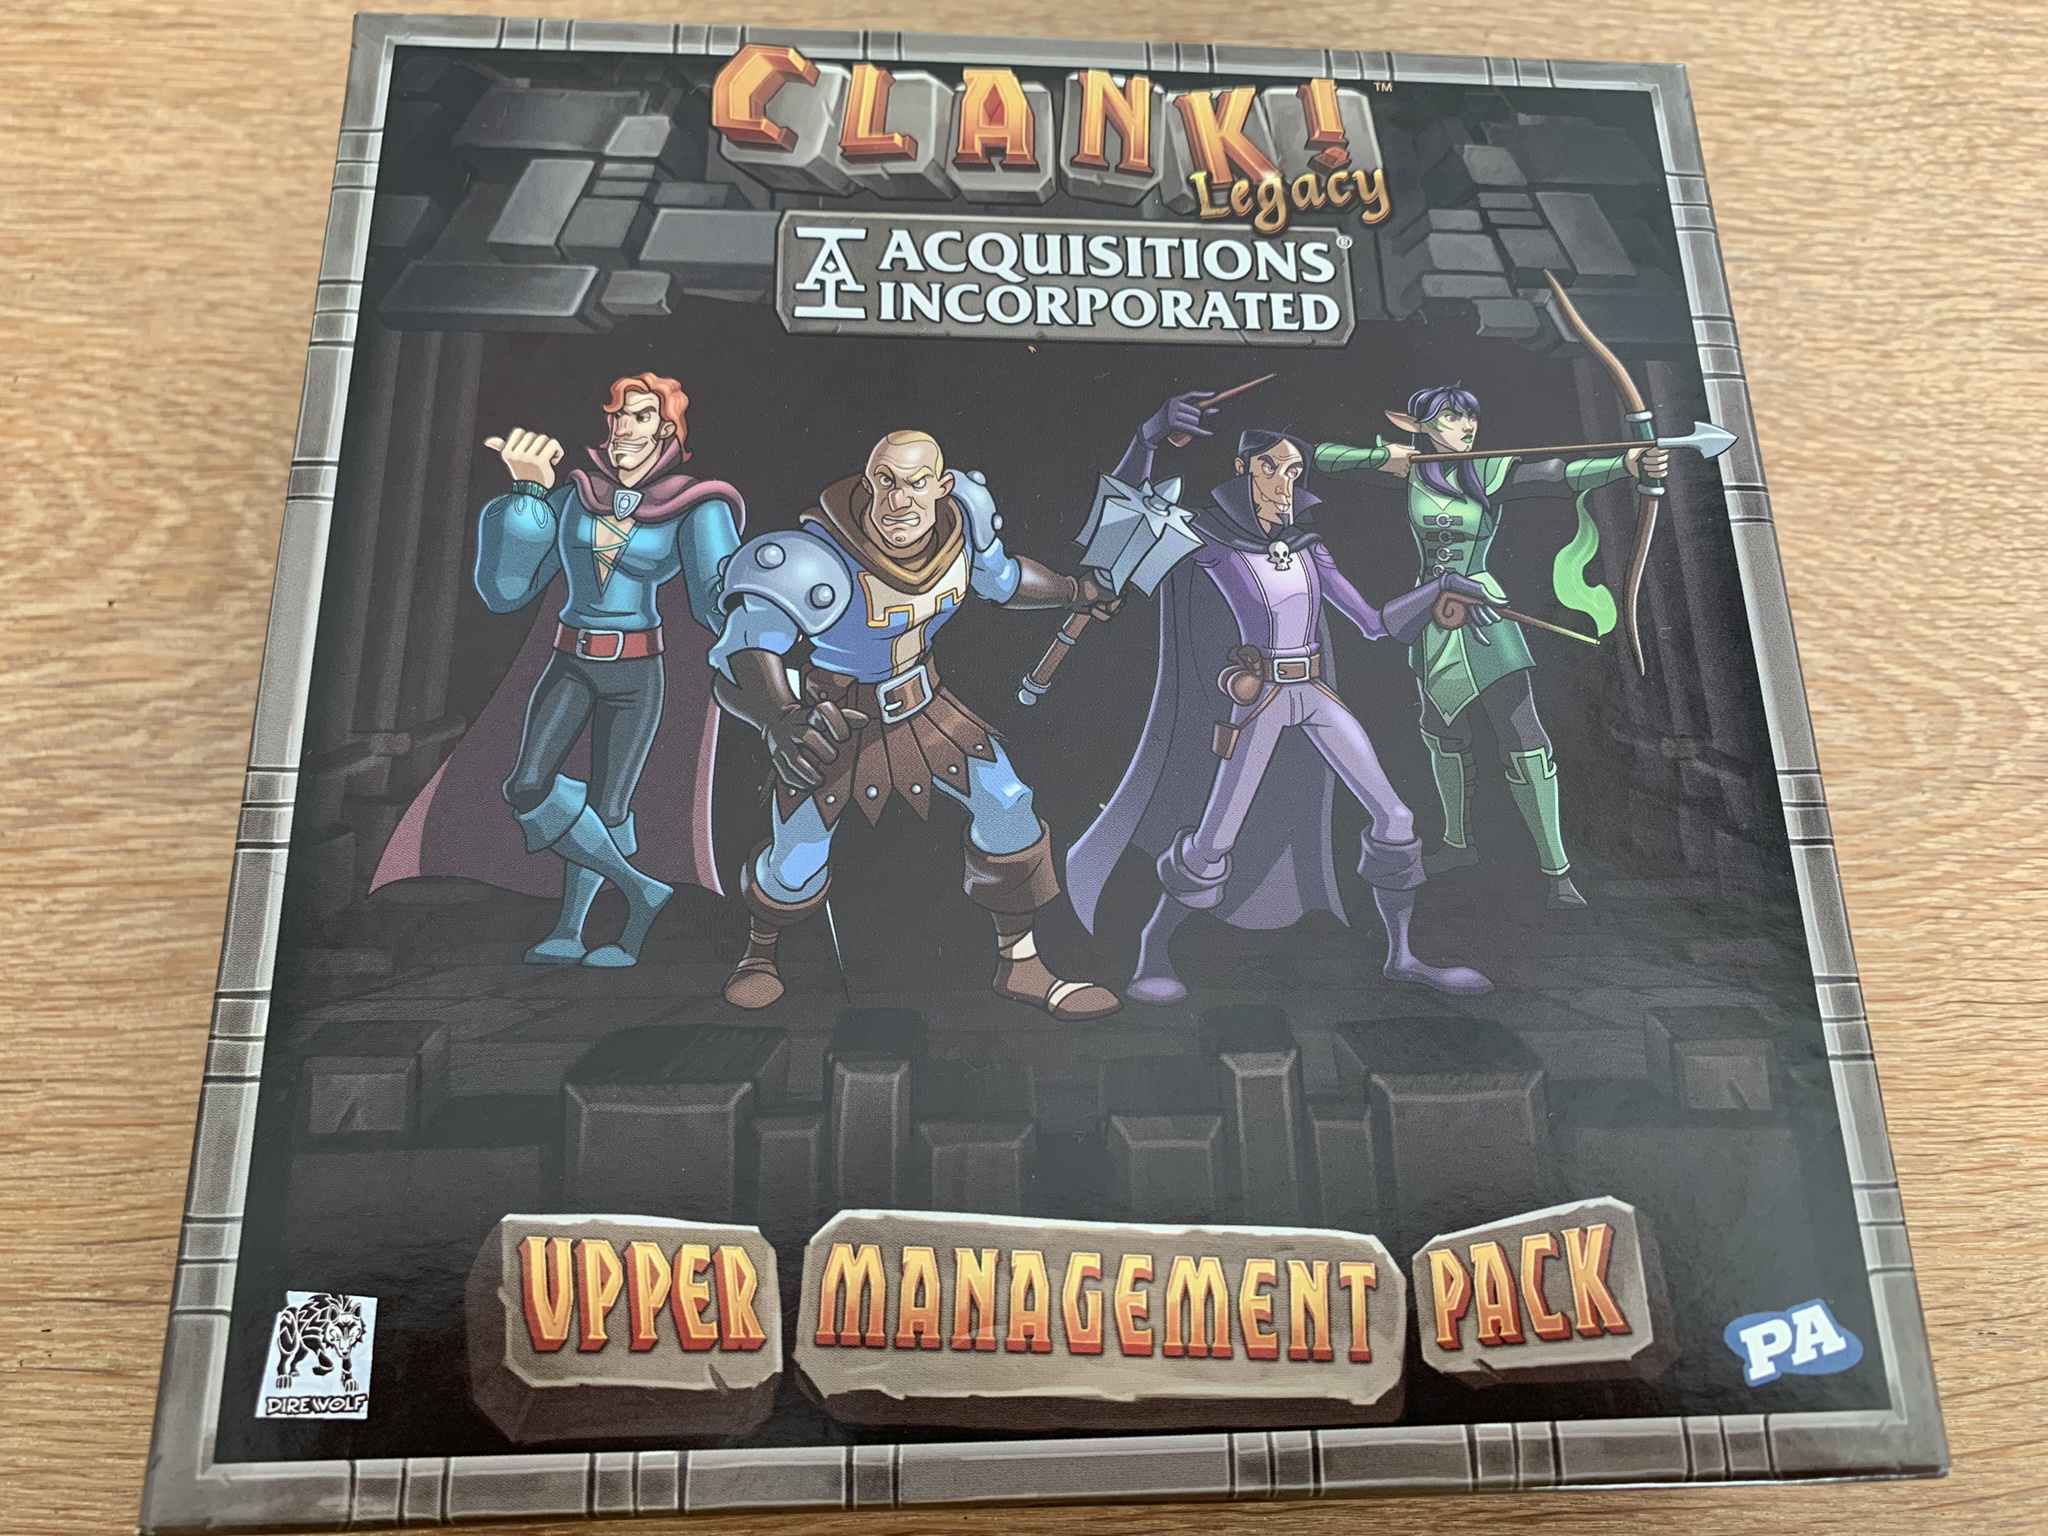 Clank! Legacy: Acquisitions Incorporated - cover